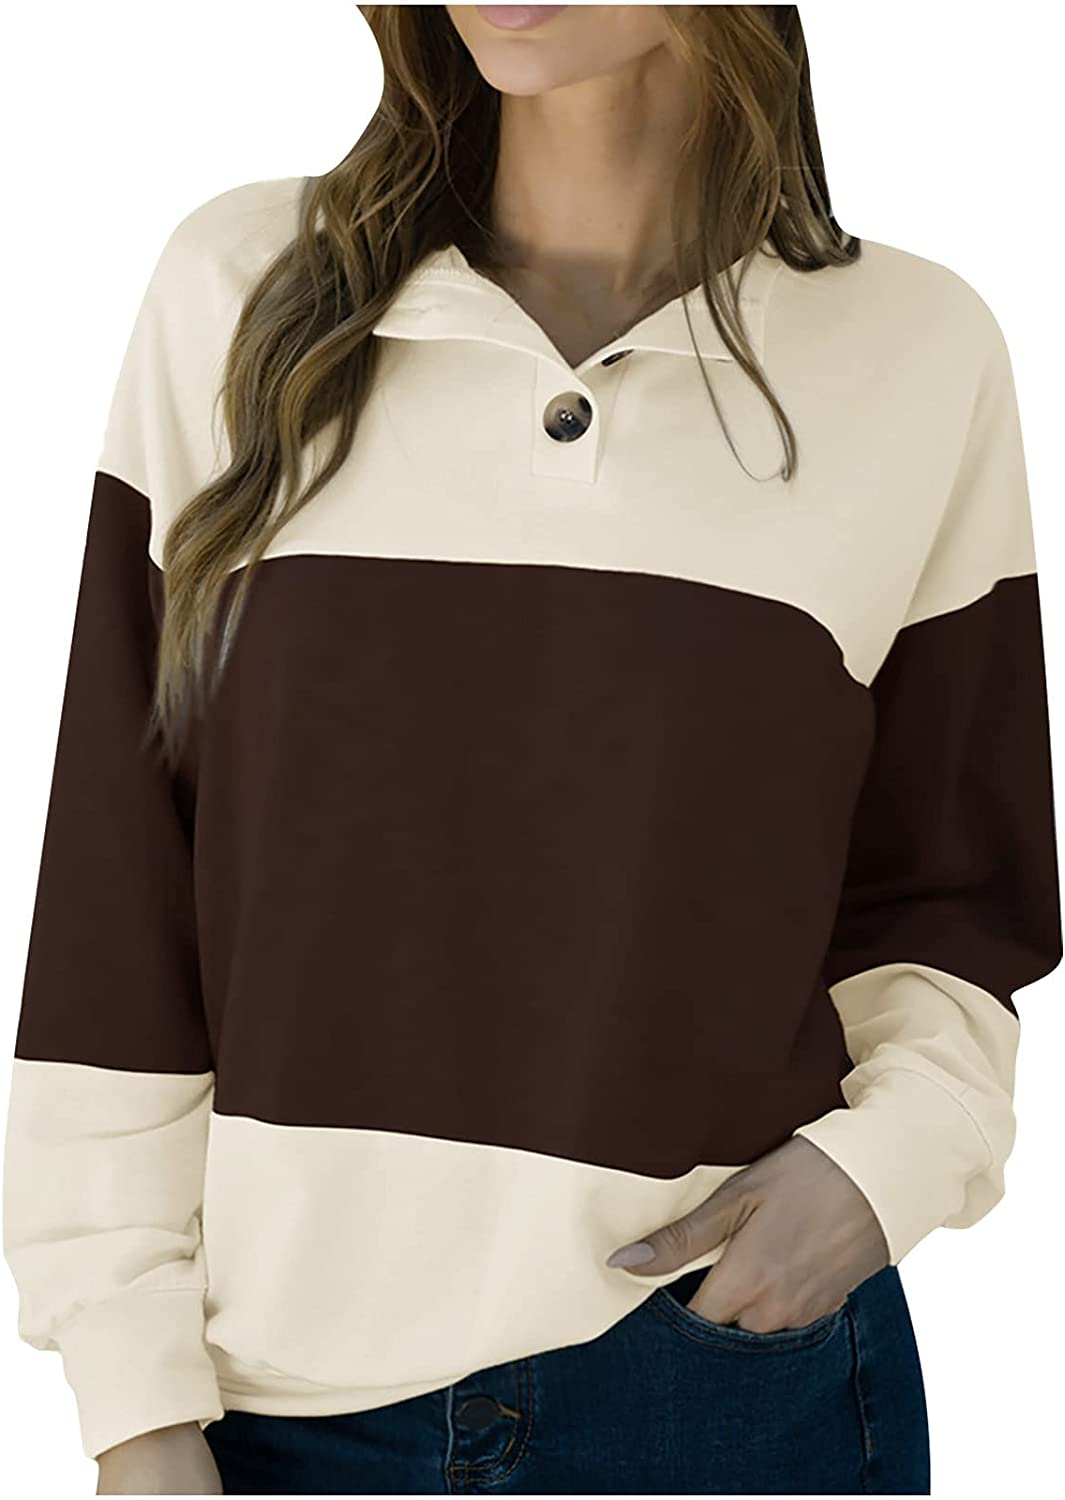 Sweatshirt for Women,Women'S Tops O-Neck Buttons Lapel Pullover Casual T-Shirt Fall Patchwork Long Sleeve Ladies Loose Blouse